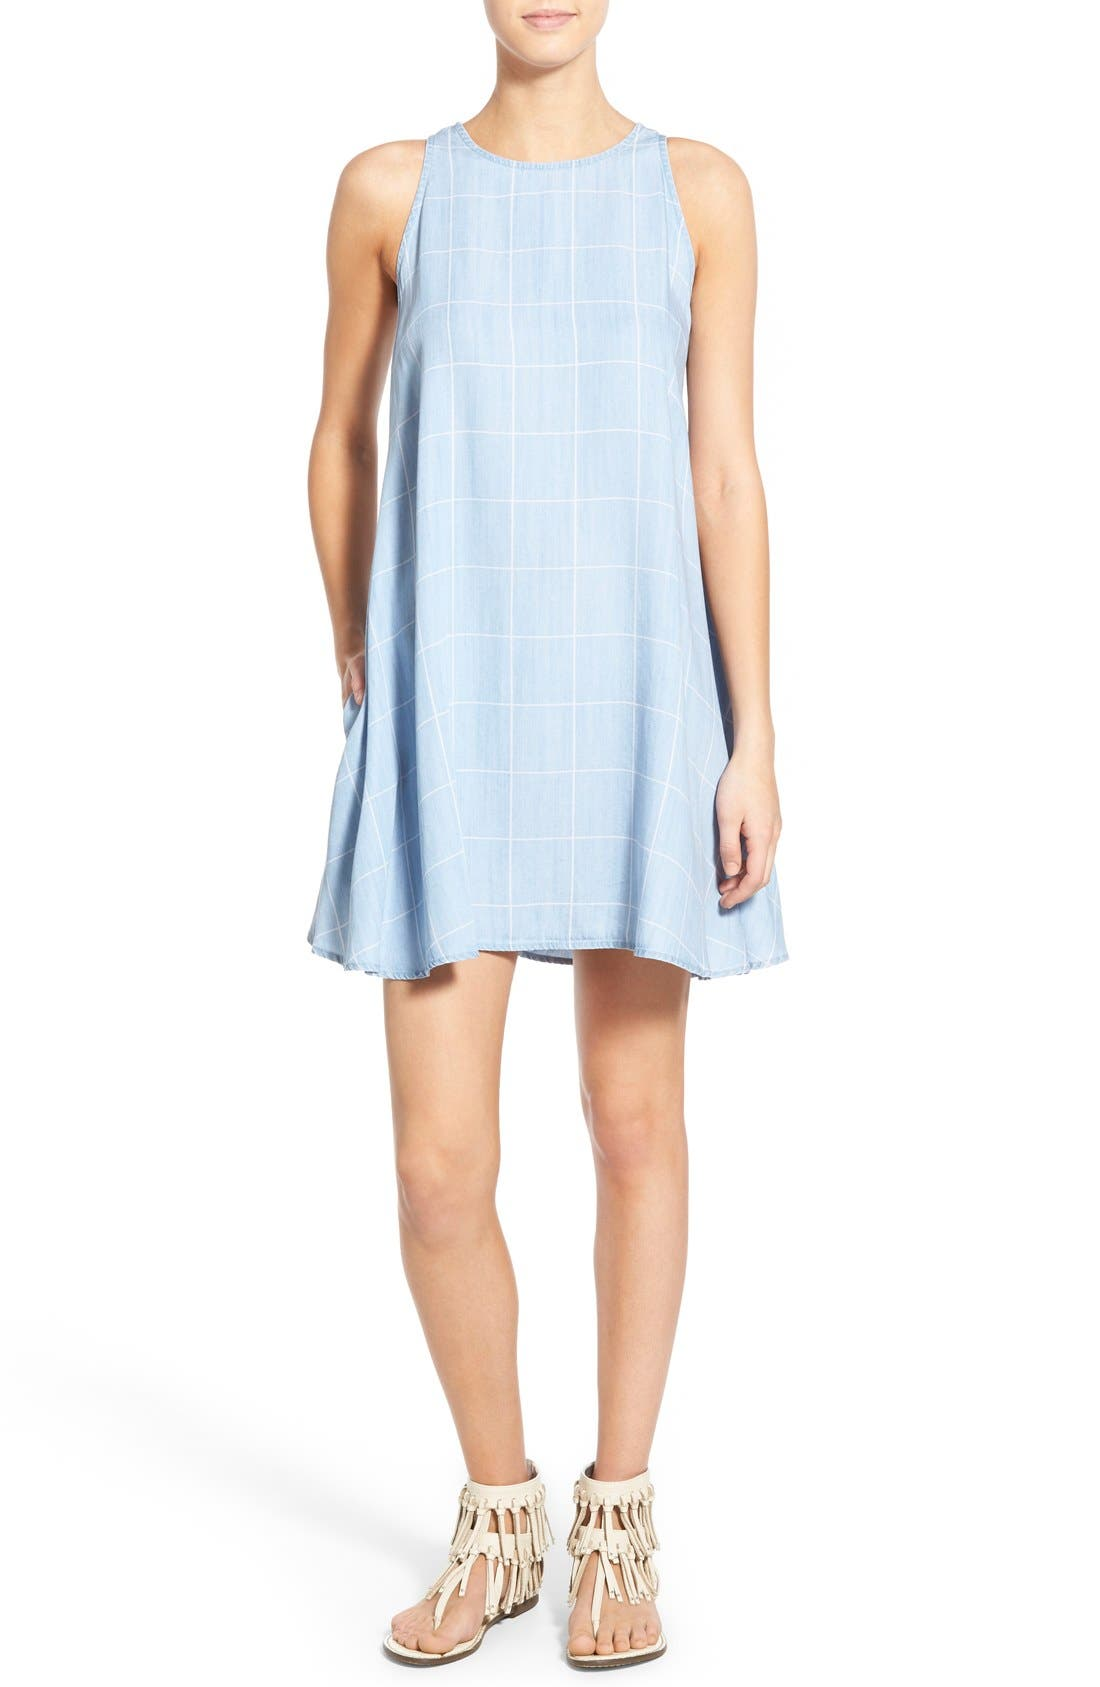 Alternate Image 1 Selected - Rails 'Anya' Check Chambray Shift Dress